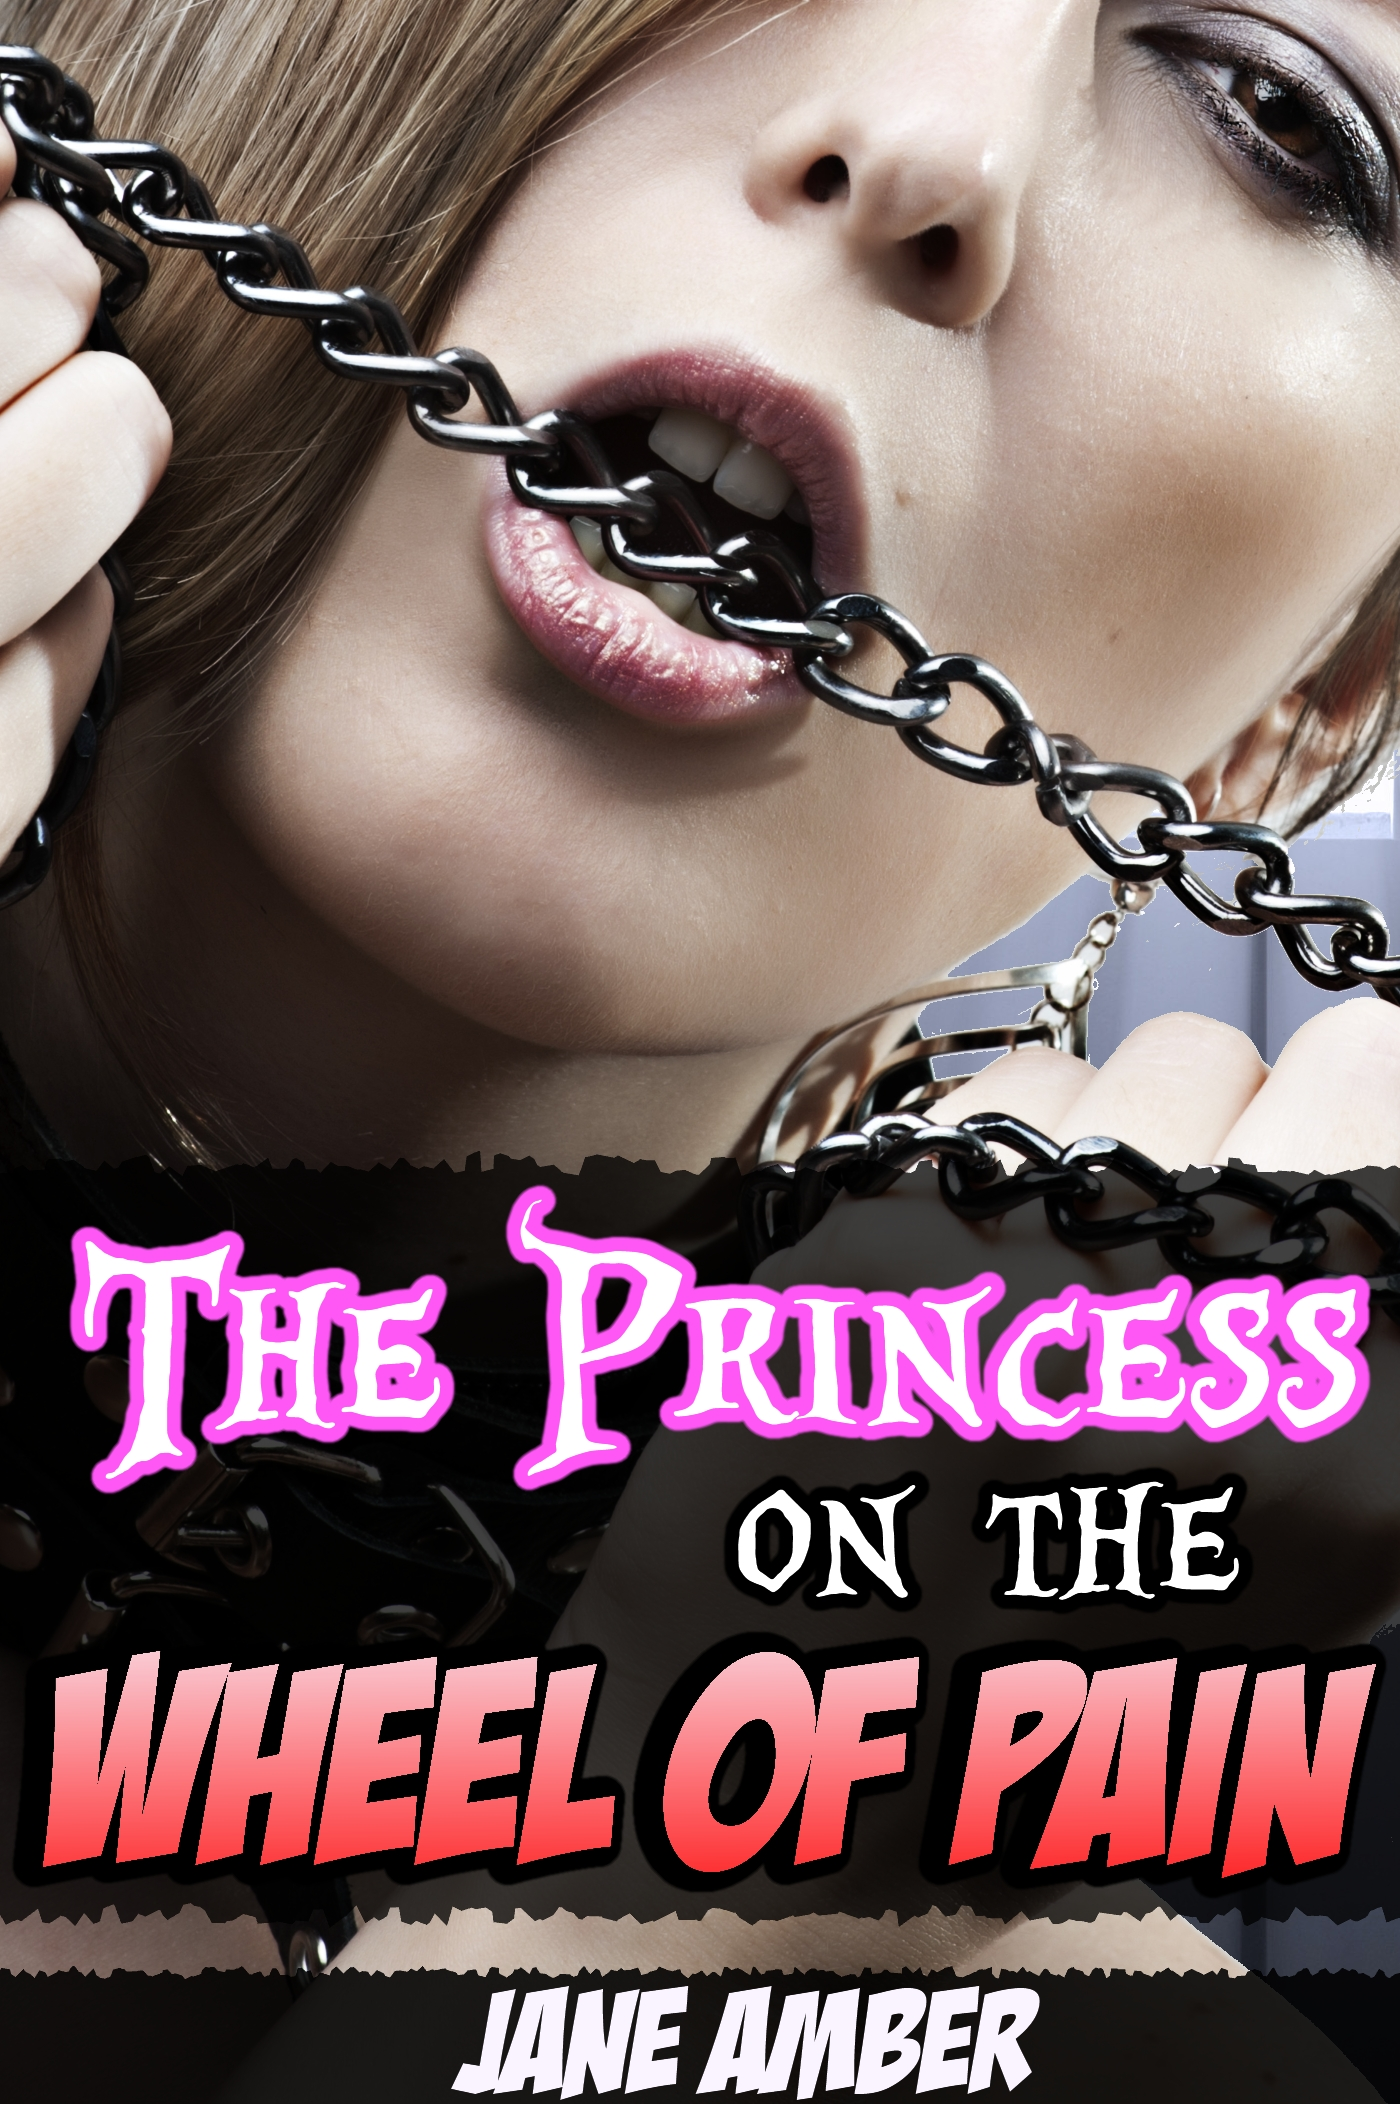 The Princess on the Wheel of Pain